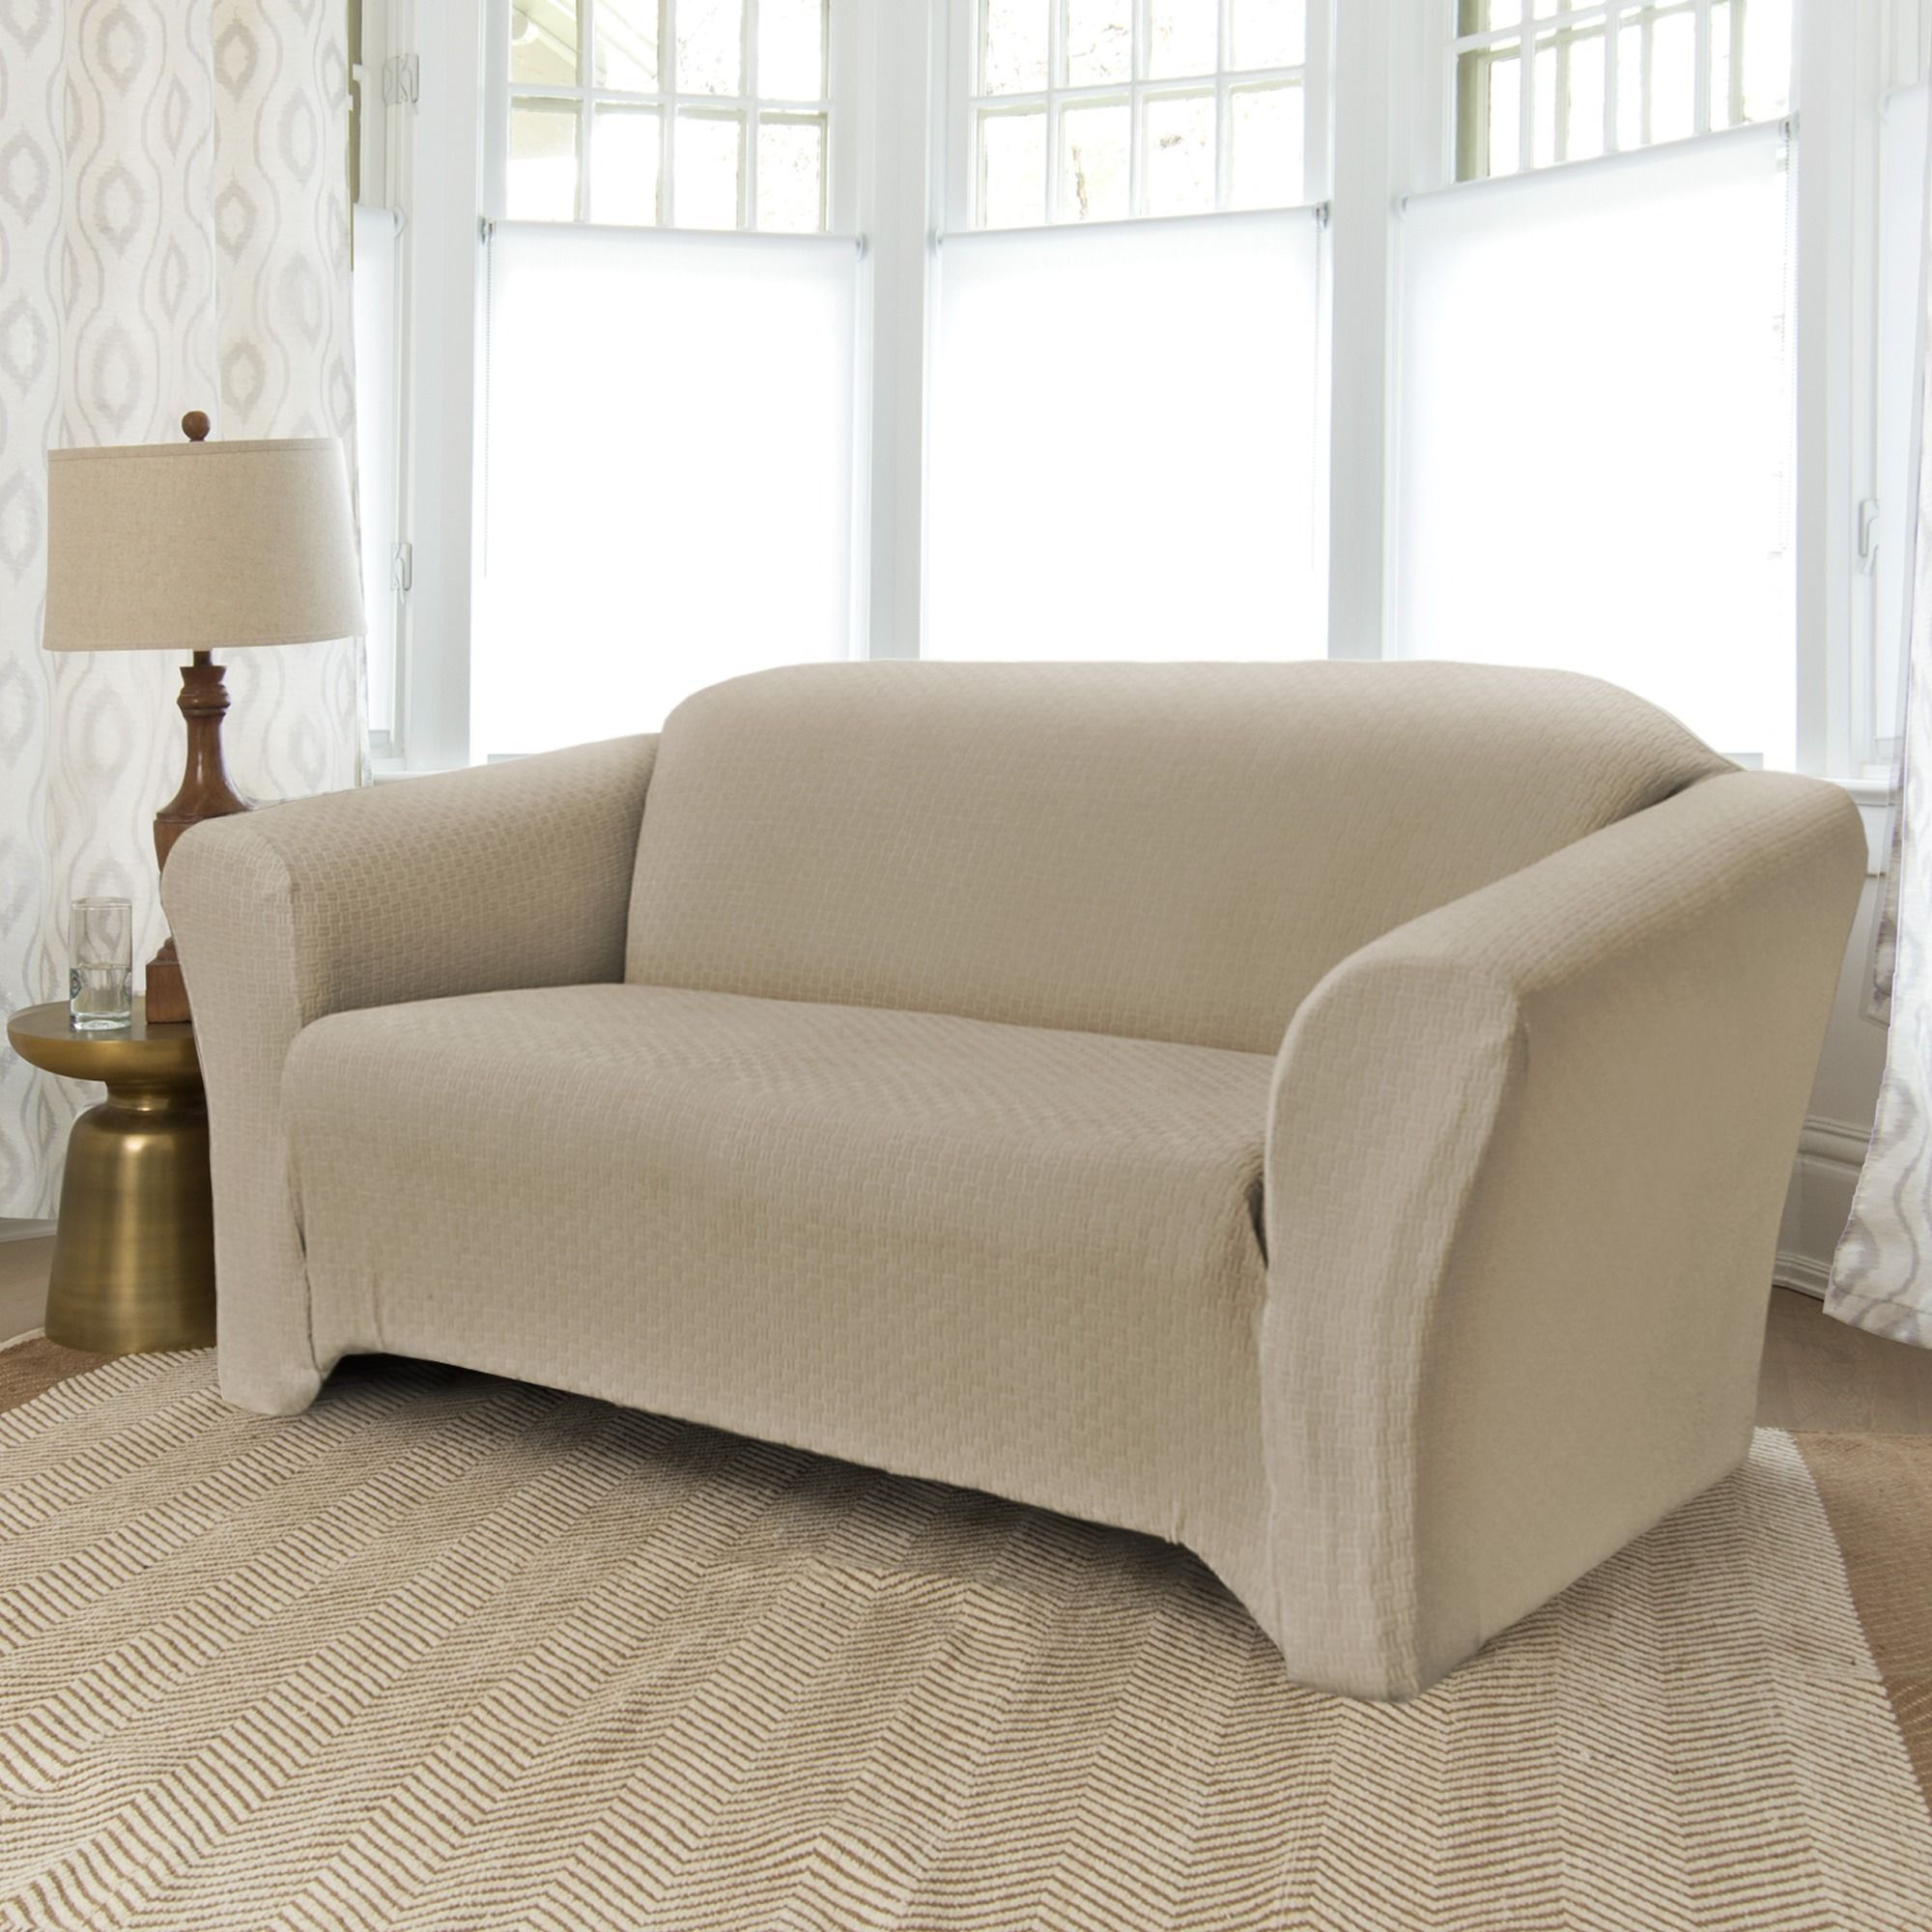 sofa for slipcover cover inspirational seat and furniture white luxe of blue slip floor lovely